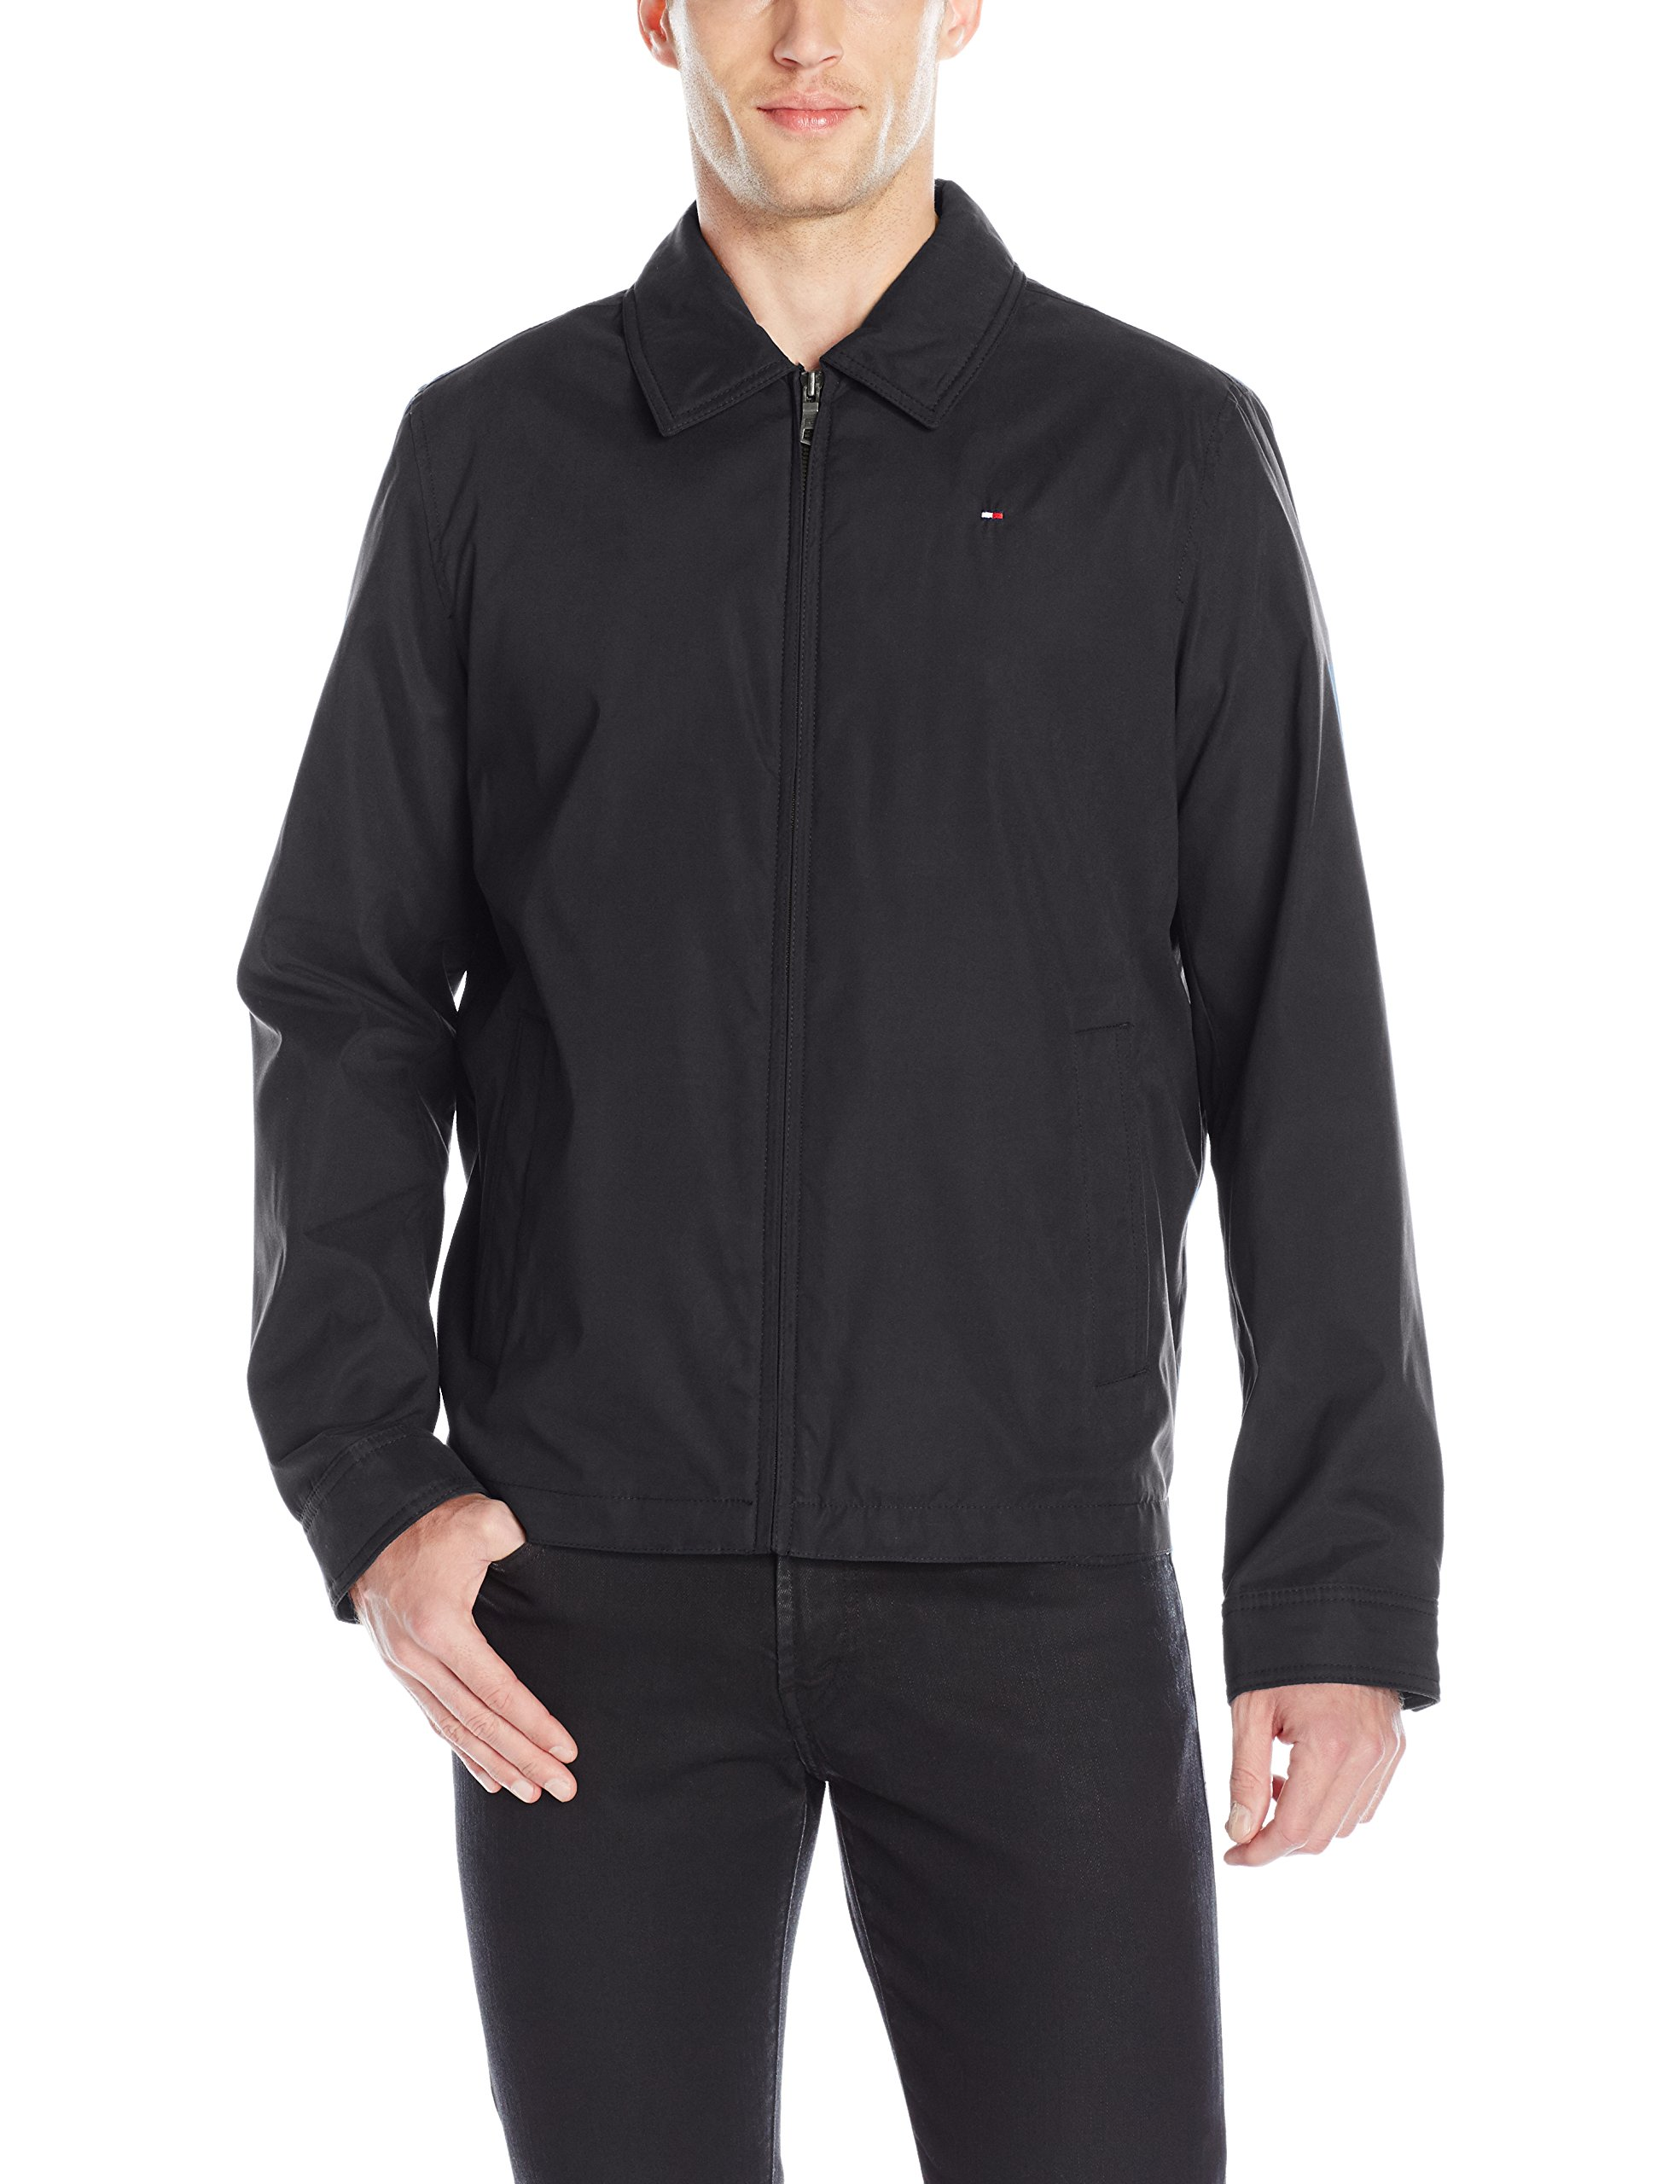 Tommy Hilfiger Men's Lightweight Microtwill Golf Jacket, Black, L by Tommy Hilfiger